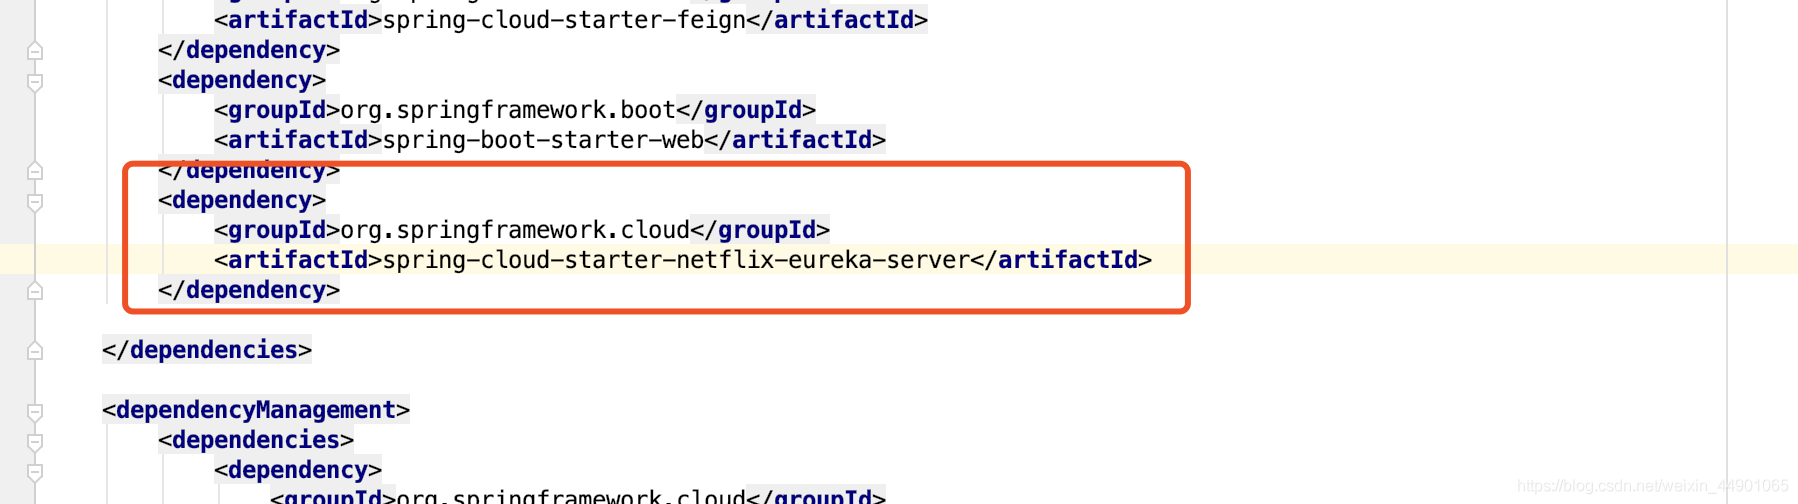 SpringCloud整合Feign报错:No Feign Client for loadBalancing